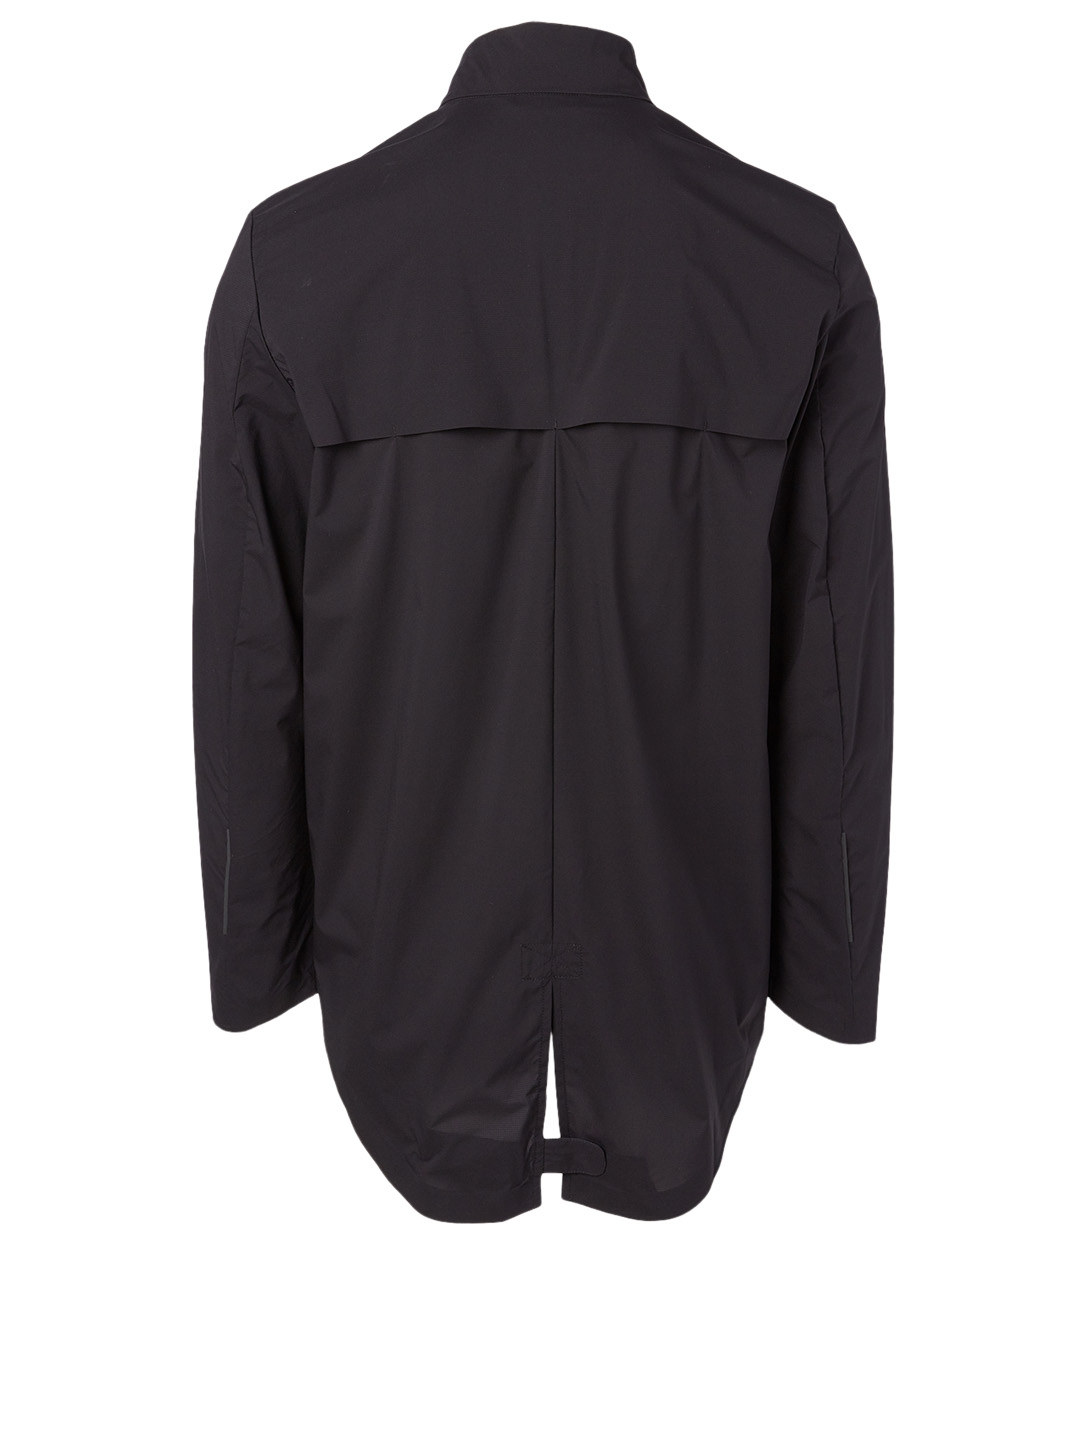 FALKE ESS Packable Running Jacket Men's Black